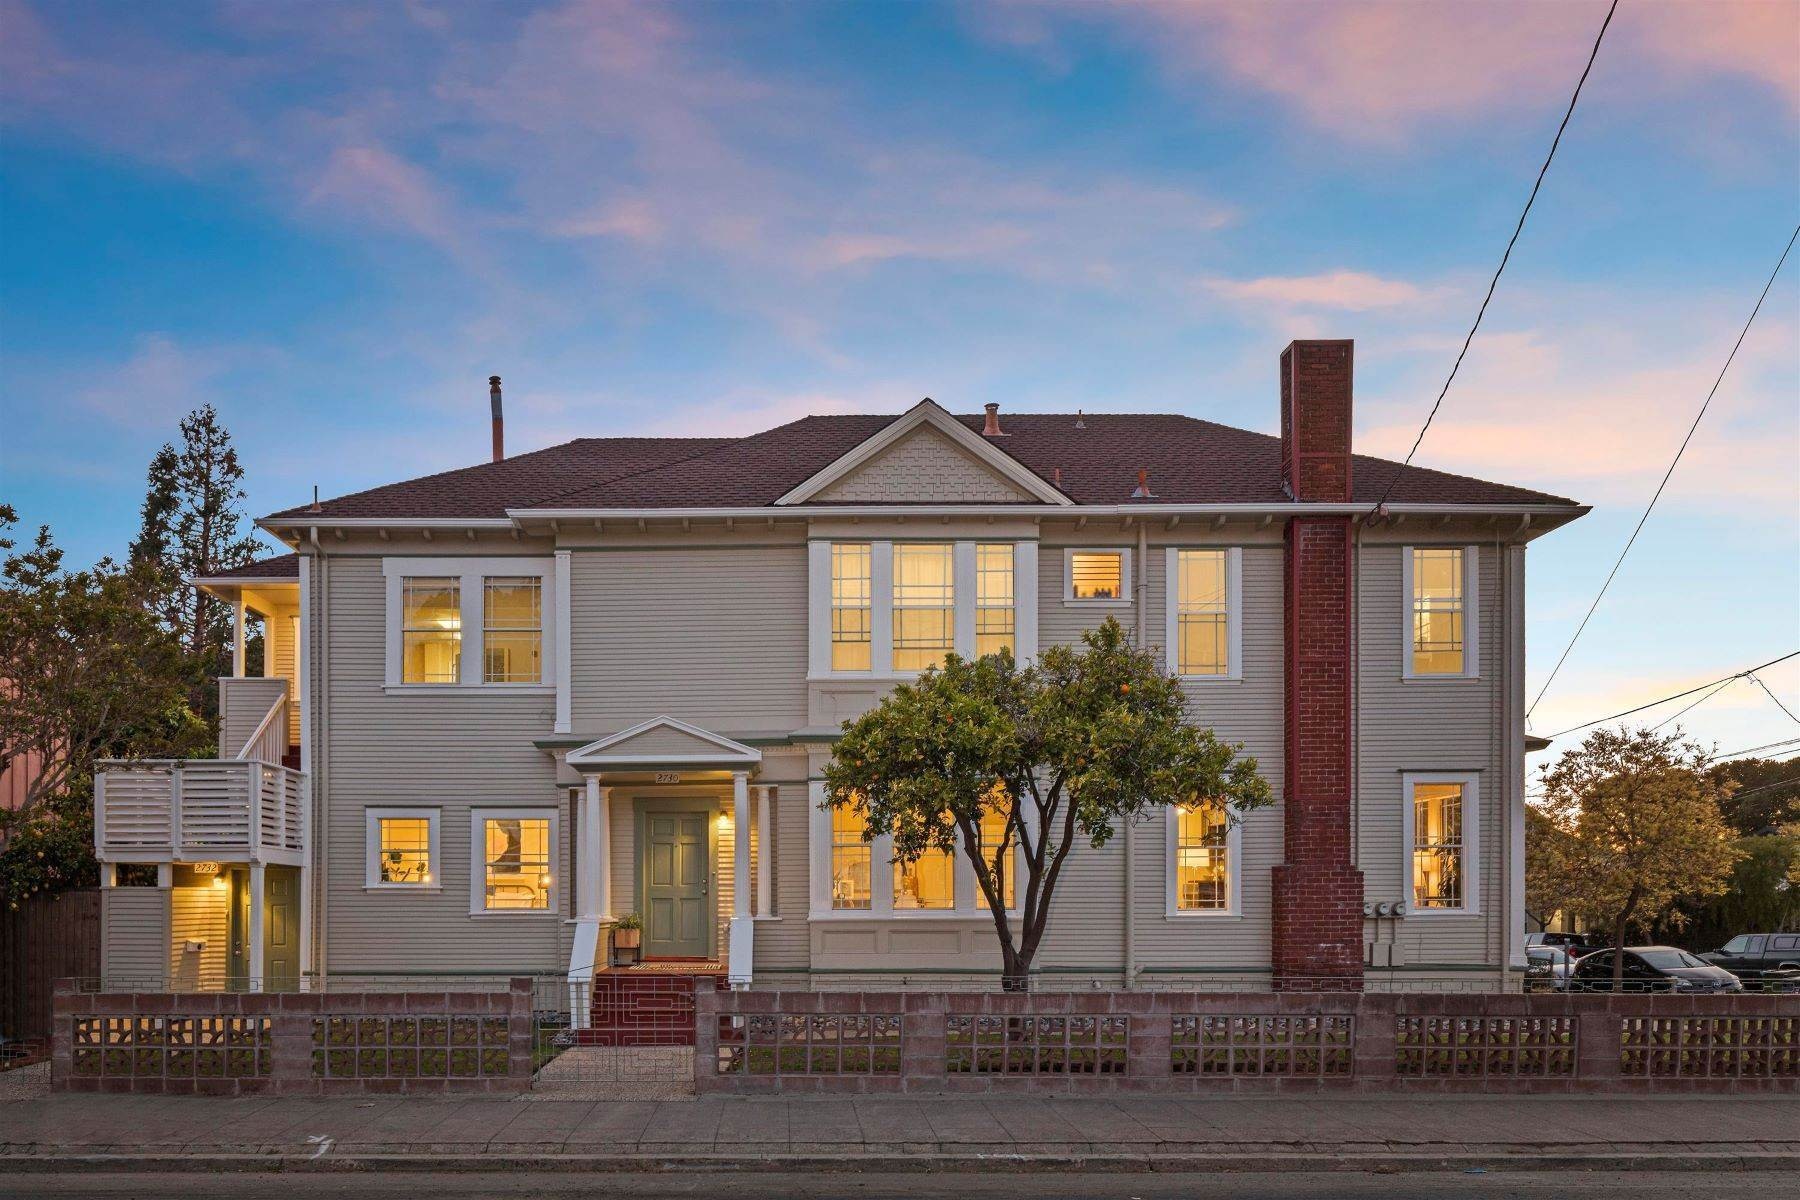 Property for Sale at Distinguished Triplex in an Ideal Berkeley Location 2240 Ward Street Berkeley, California 94705 United States